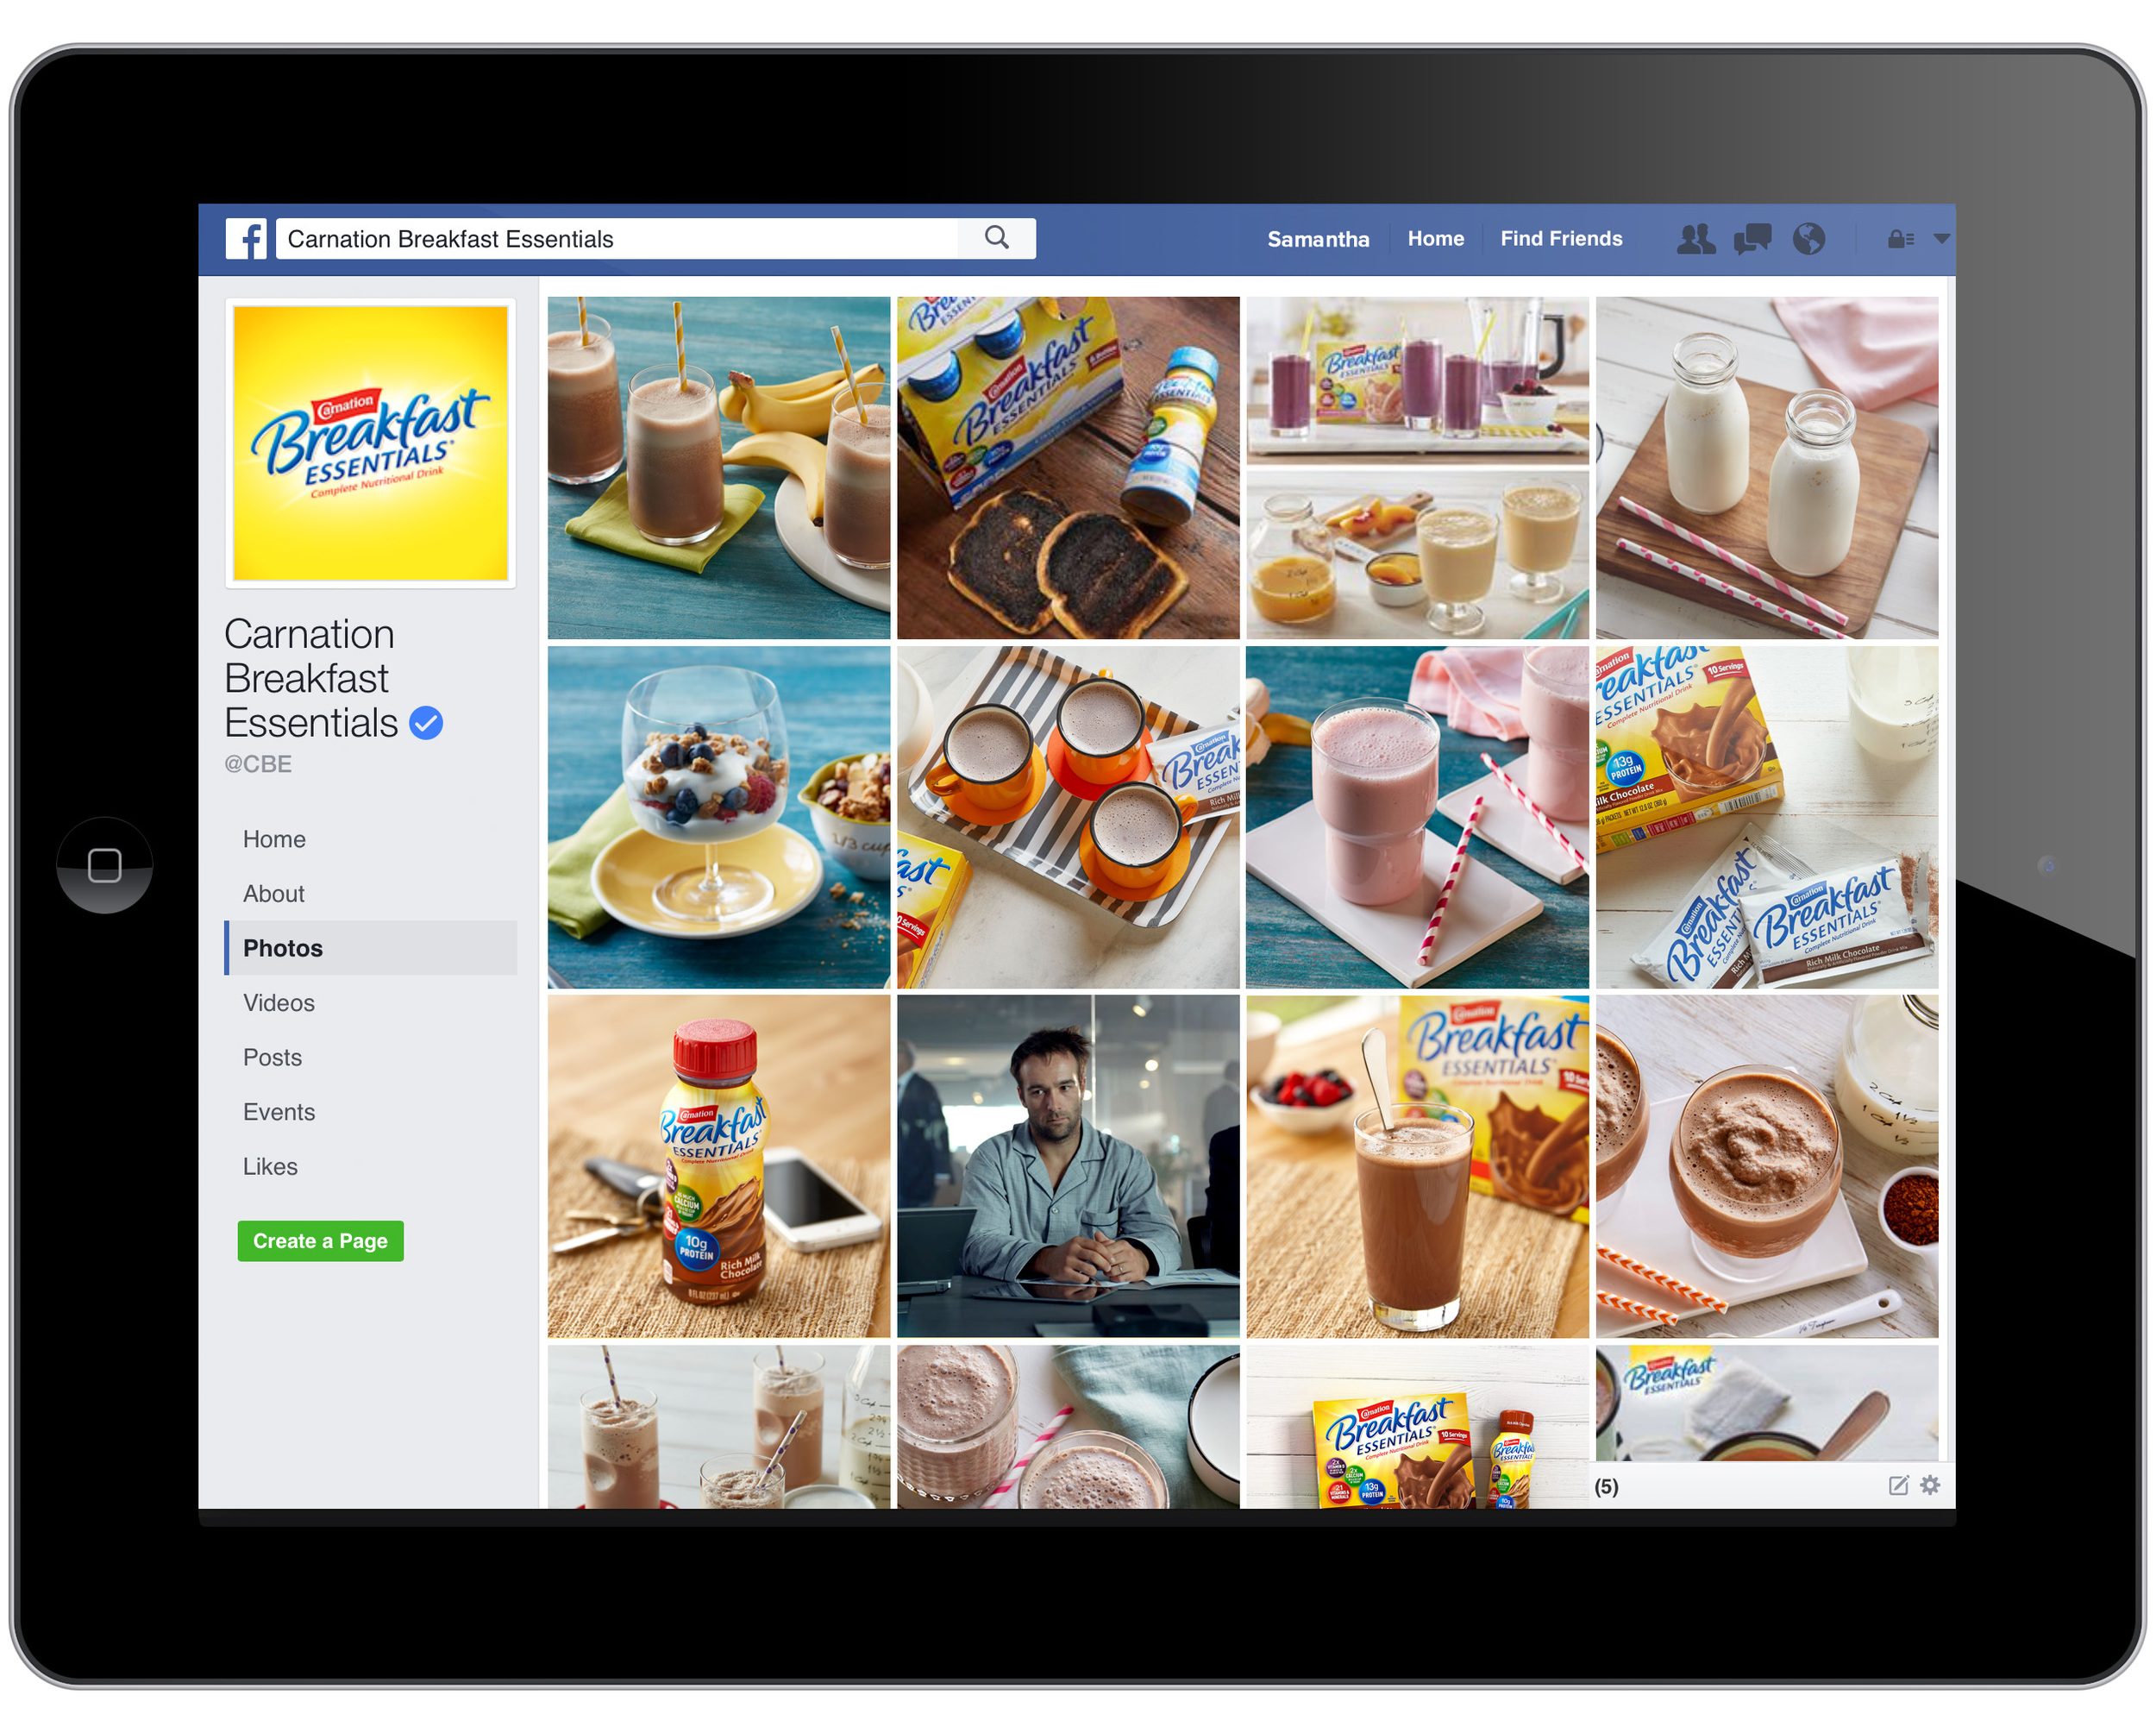 Updated Facebook presence featuring new food photography.